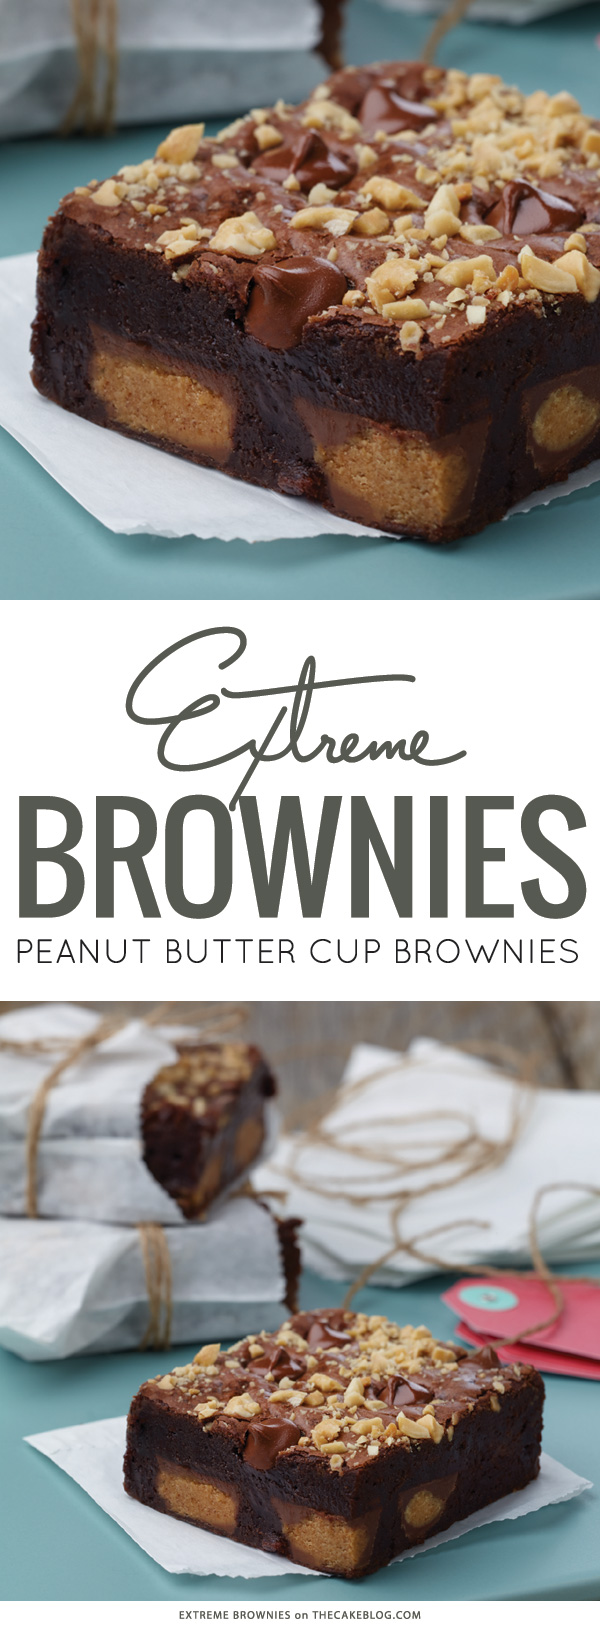 Extreme Peanut Butter Cup Brownies | by Connie Weis on TheCakeBlog.com